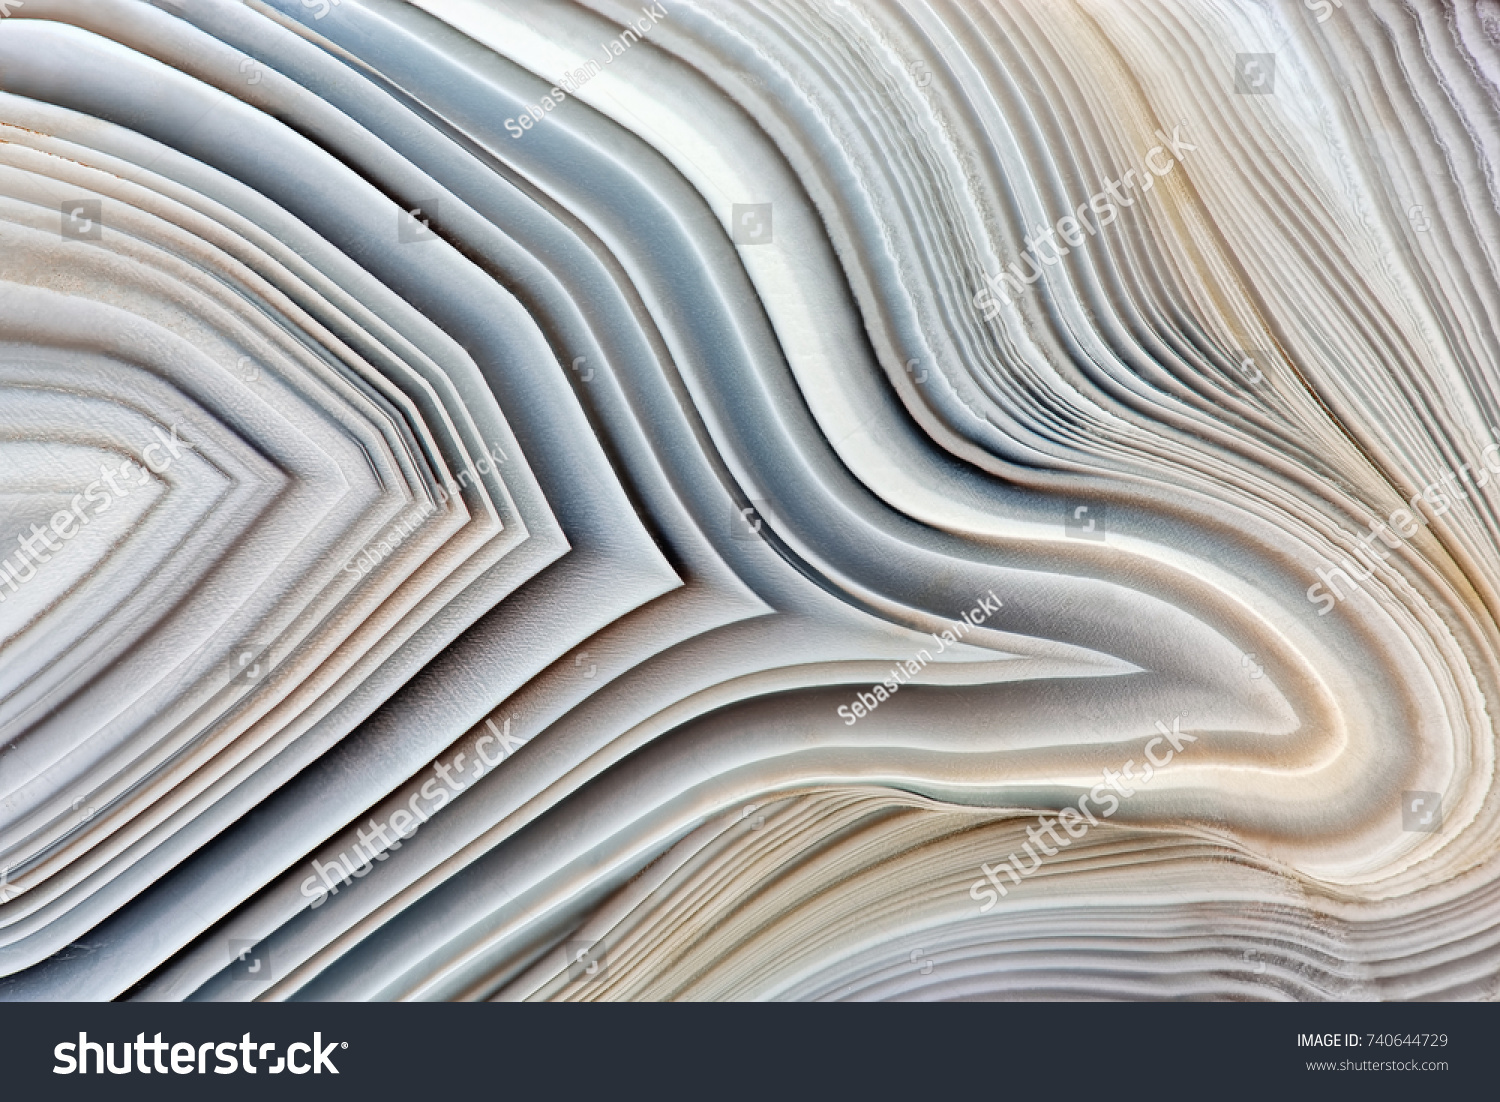 Amazing Banded Agate Crystal cross section as a background. Natural light translucent agate crystal surface, Gray abstract expressive structure slice mineral stone macro closeup #740644729 - 123PhotoFree.com